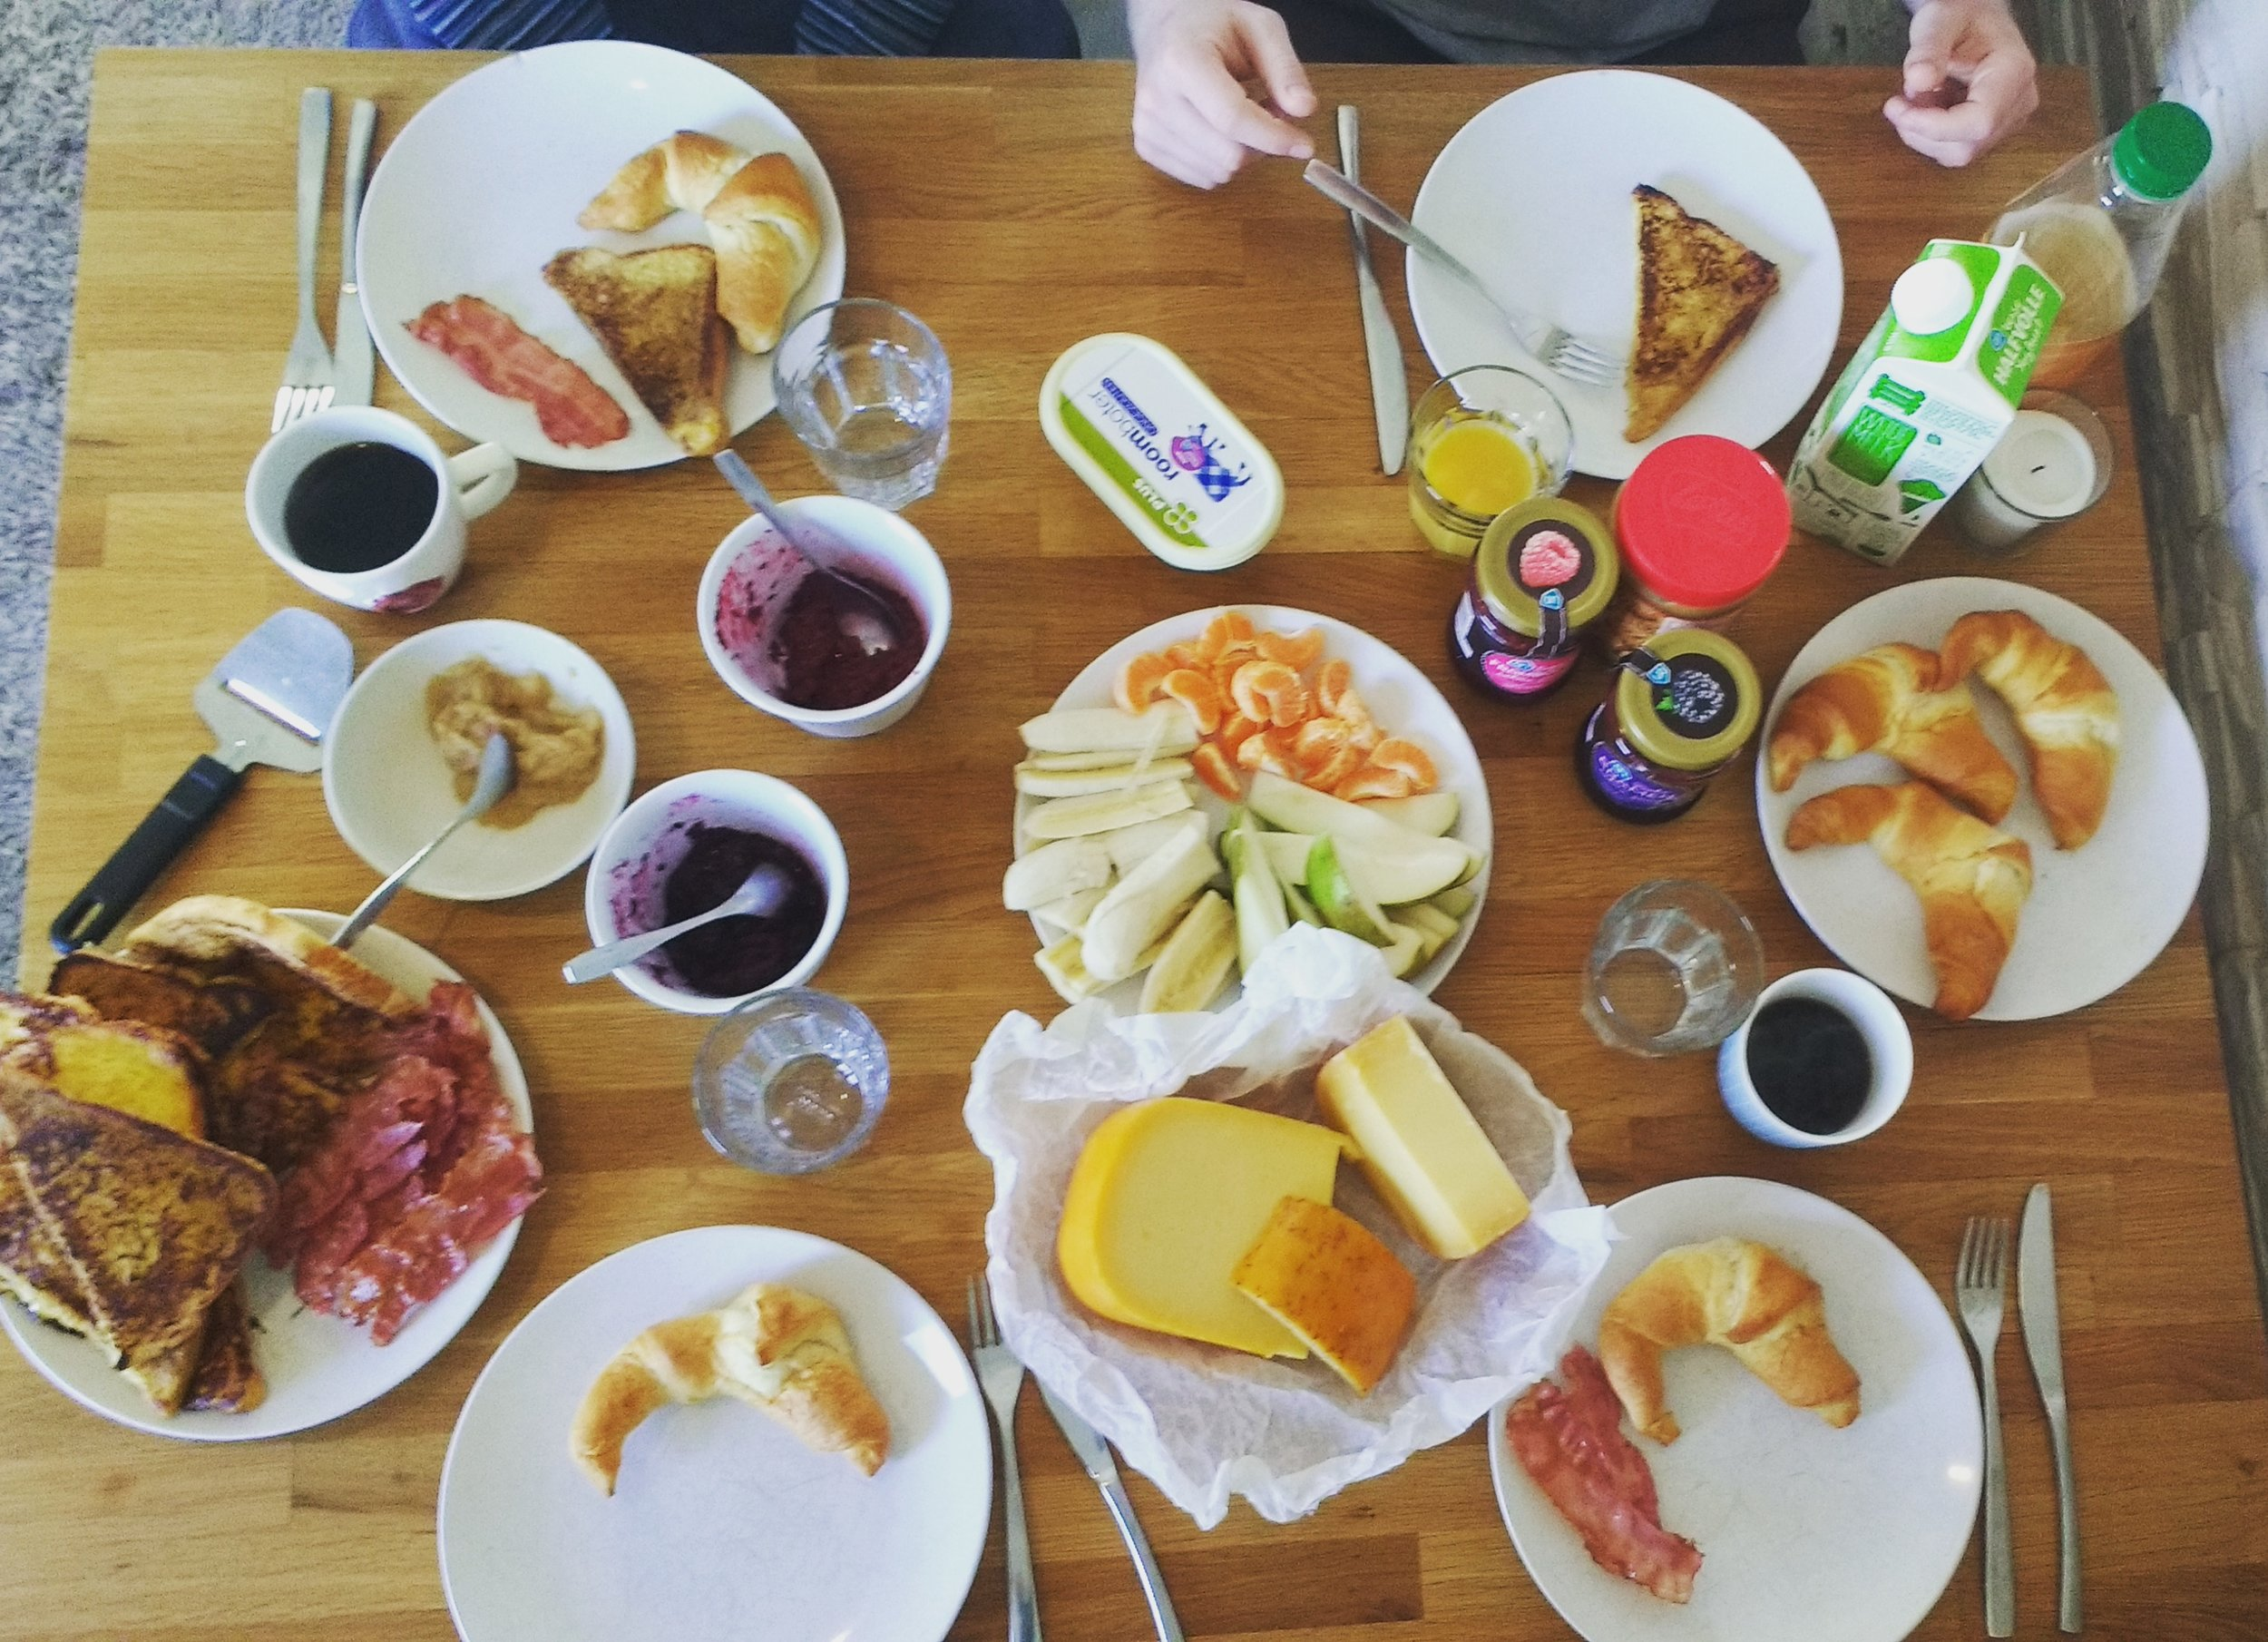 Amazing homemade brunch with friends - about a quarter of the price of going out!